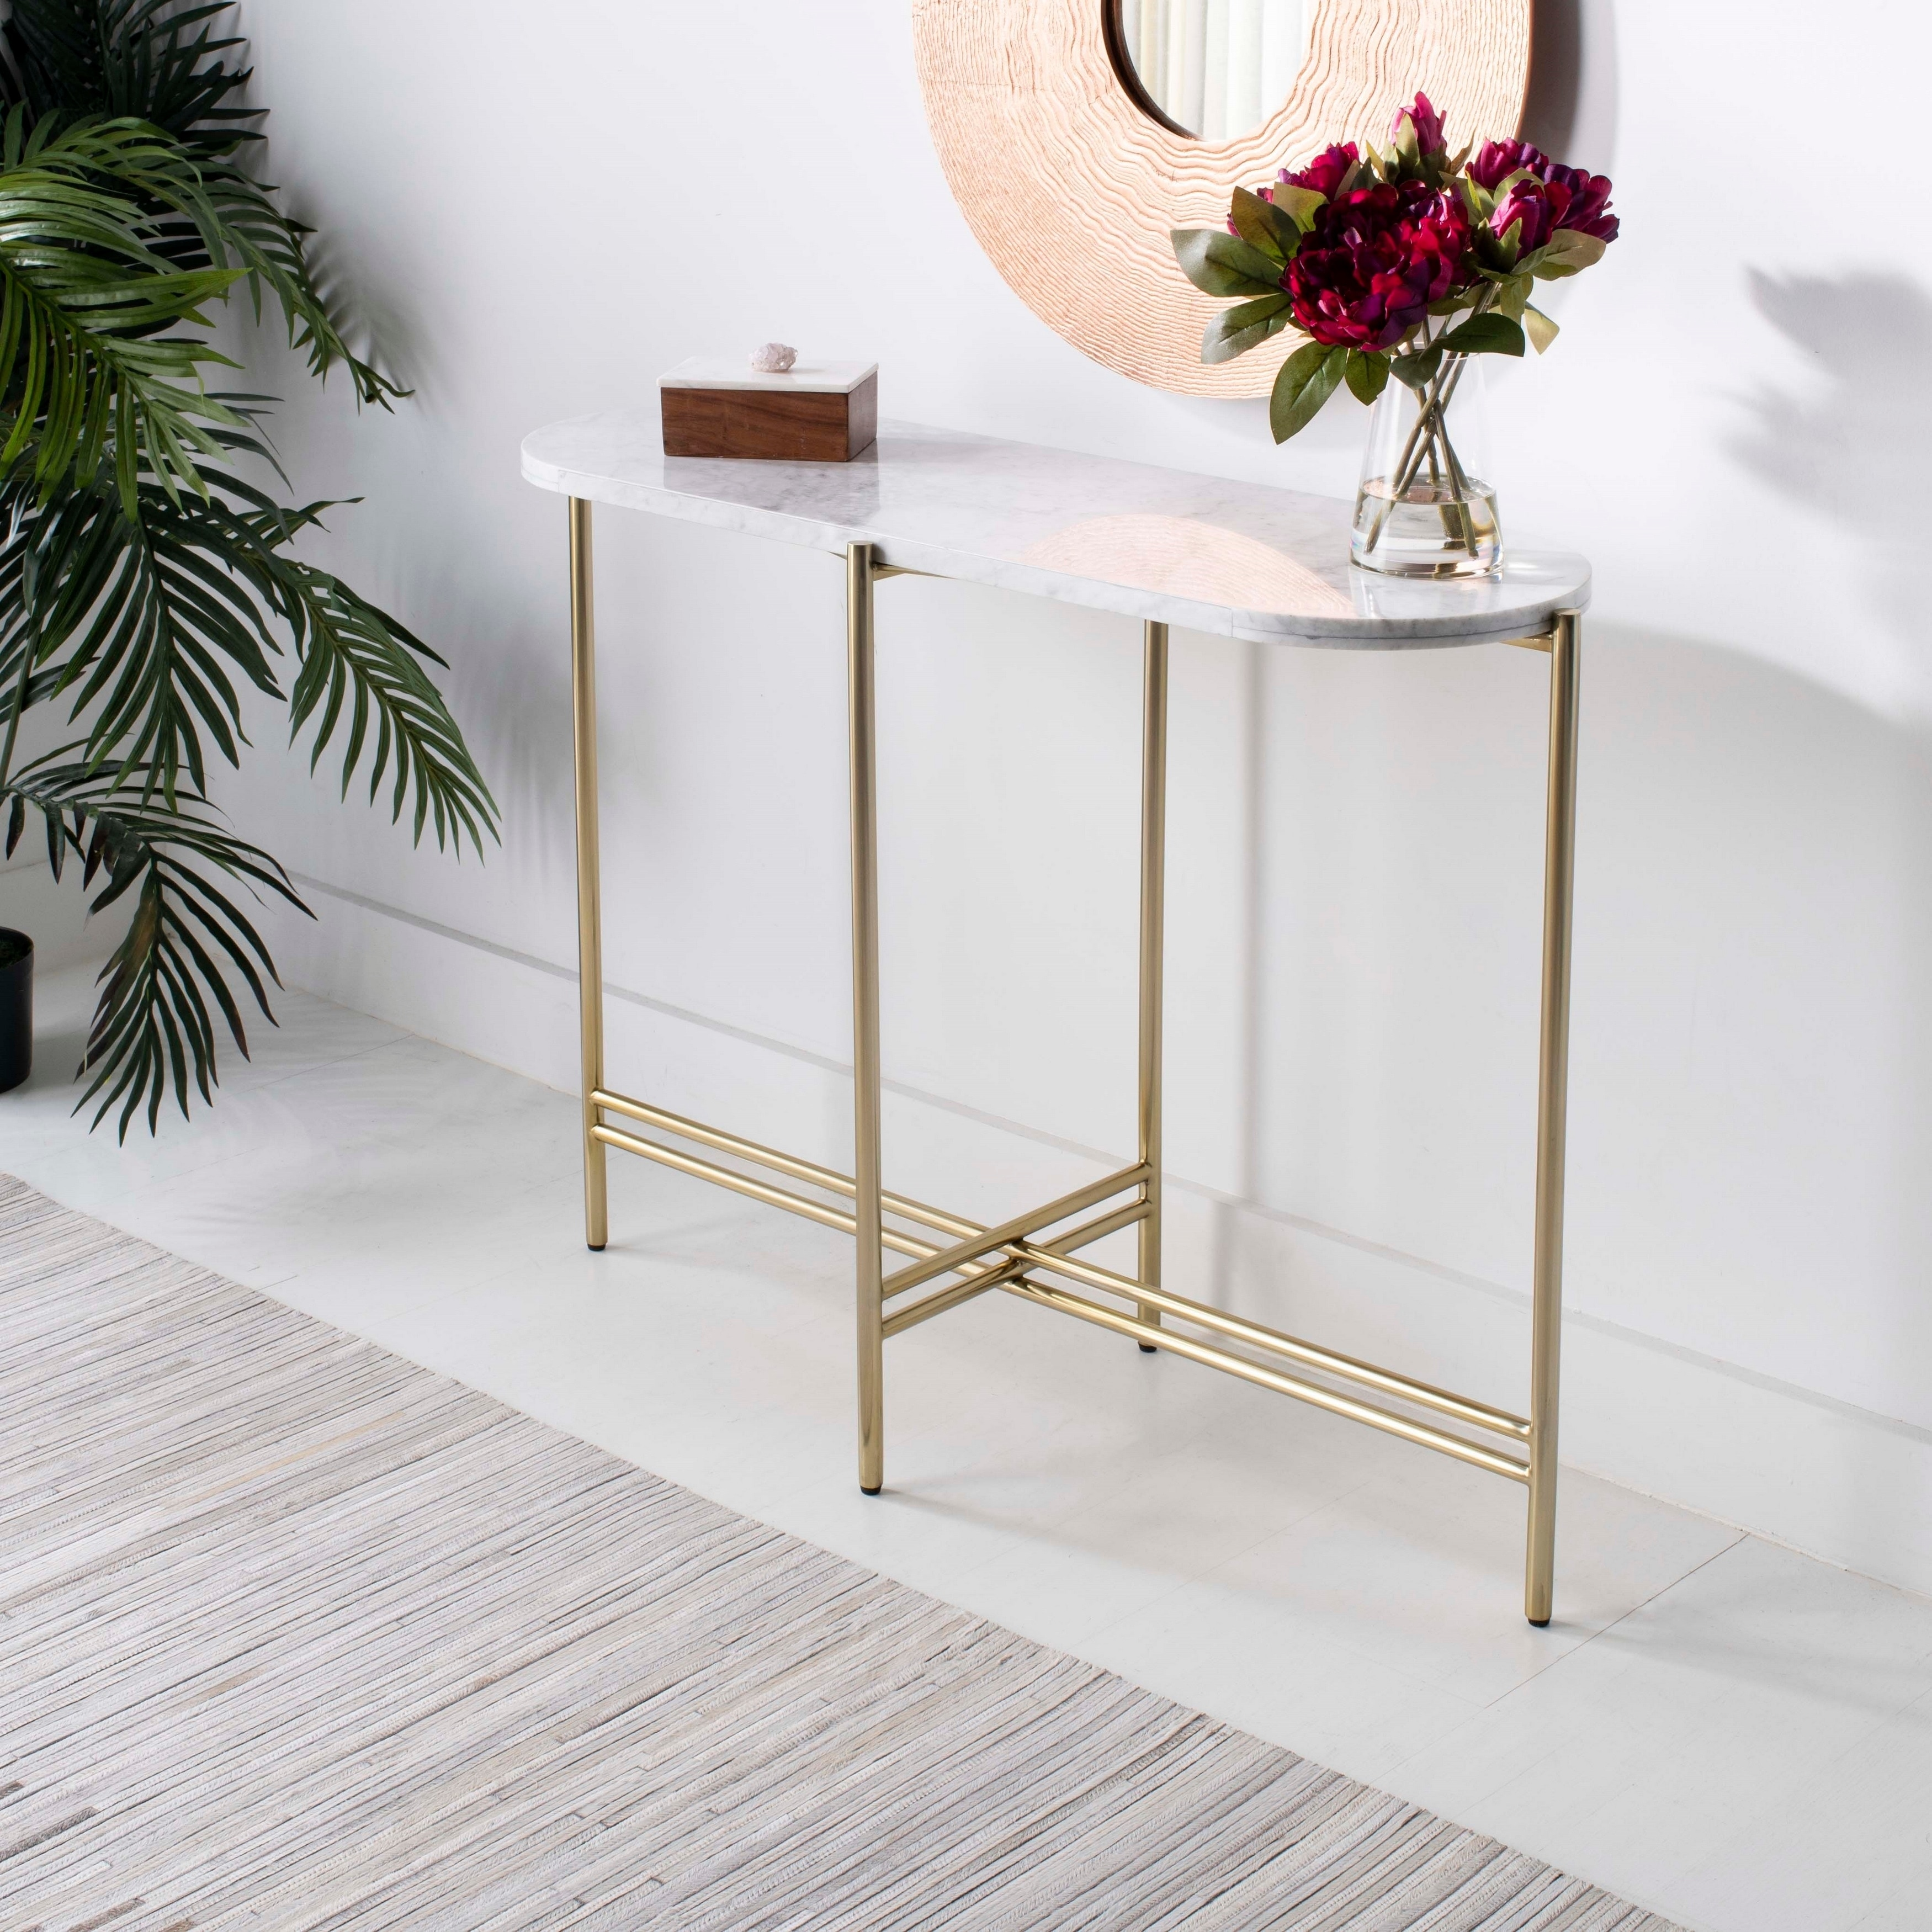 safavieh couture cassie small console table white gold round accent with glass free shipping today antique nesting tables inlay metal legs ikea self adhesive door threshold strips